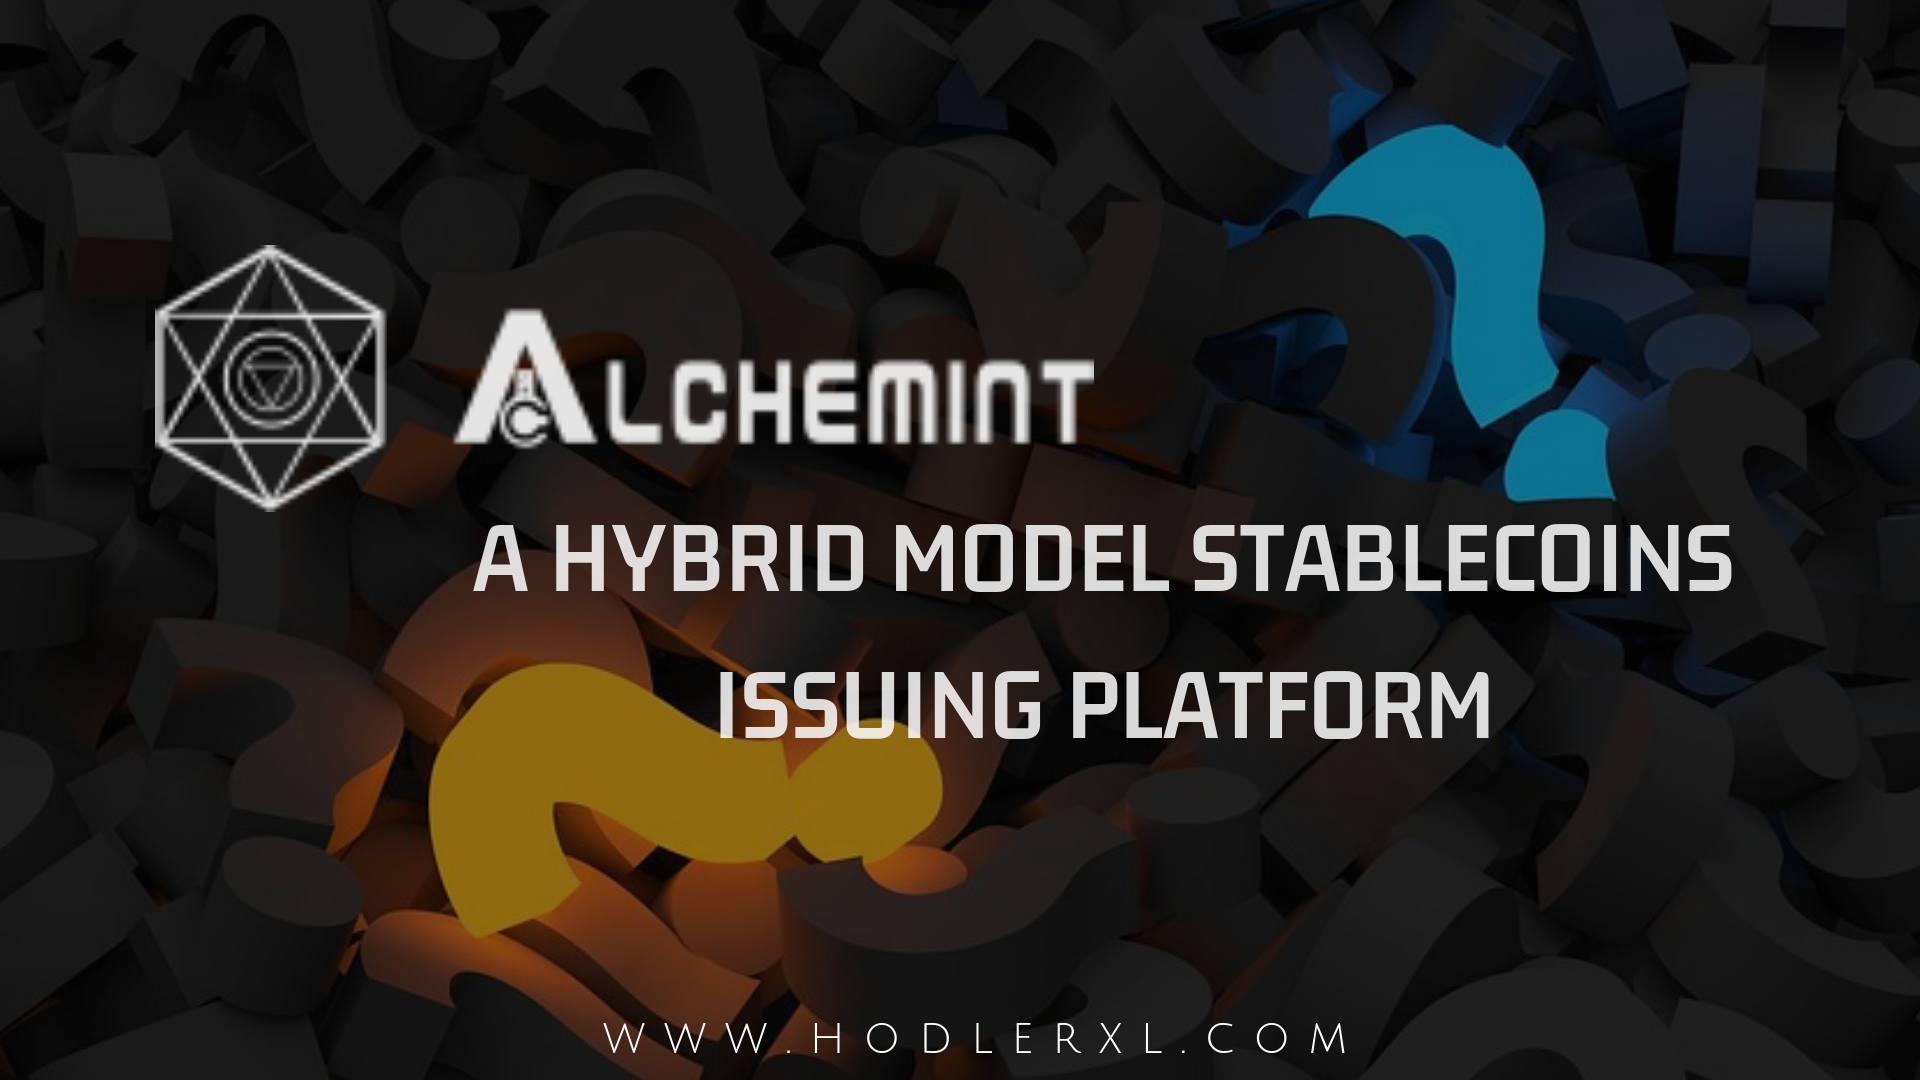 Alchemint A Hybrid Model Stablecoins Issuing Platform